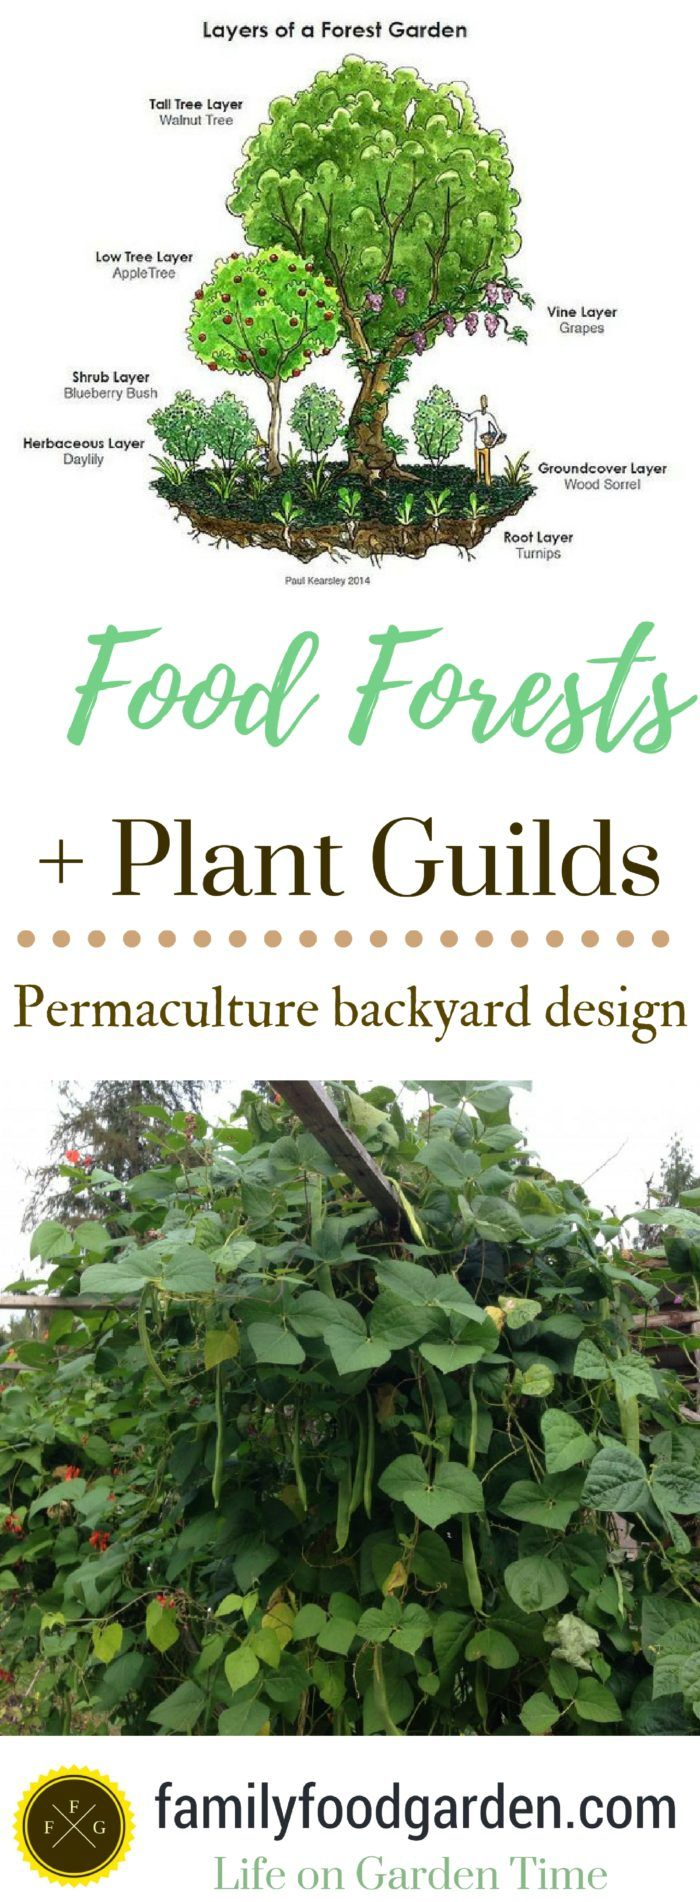 Permaculture Design Examples Google Search: Food Forests & Plant Guilds In Permaculture Design